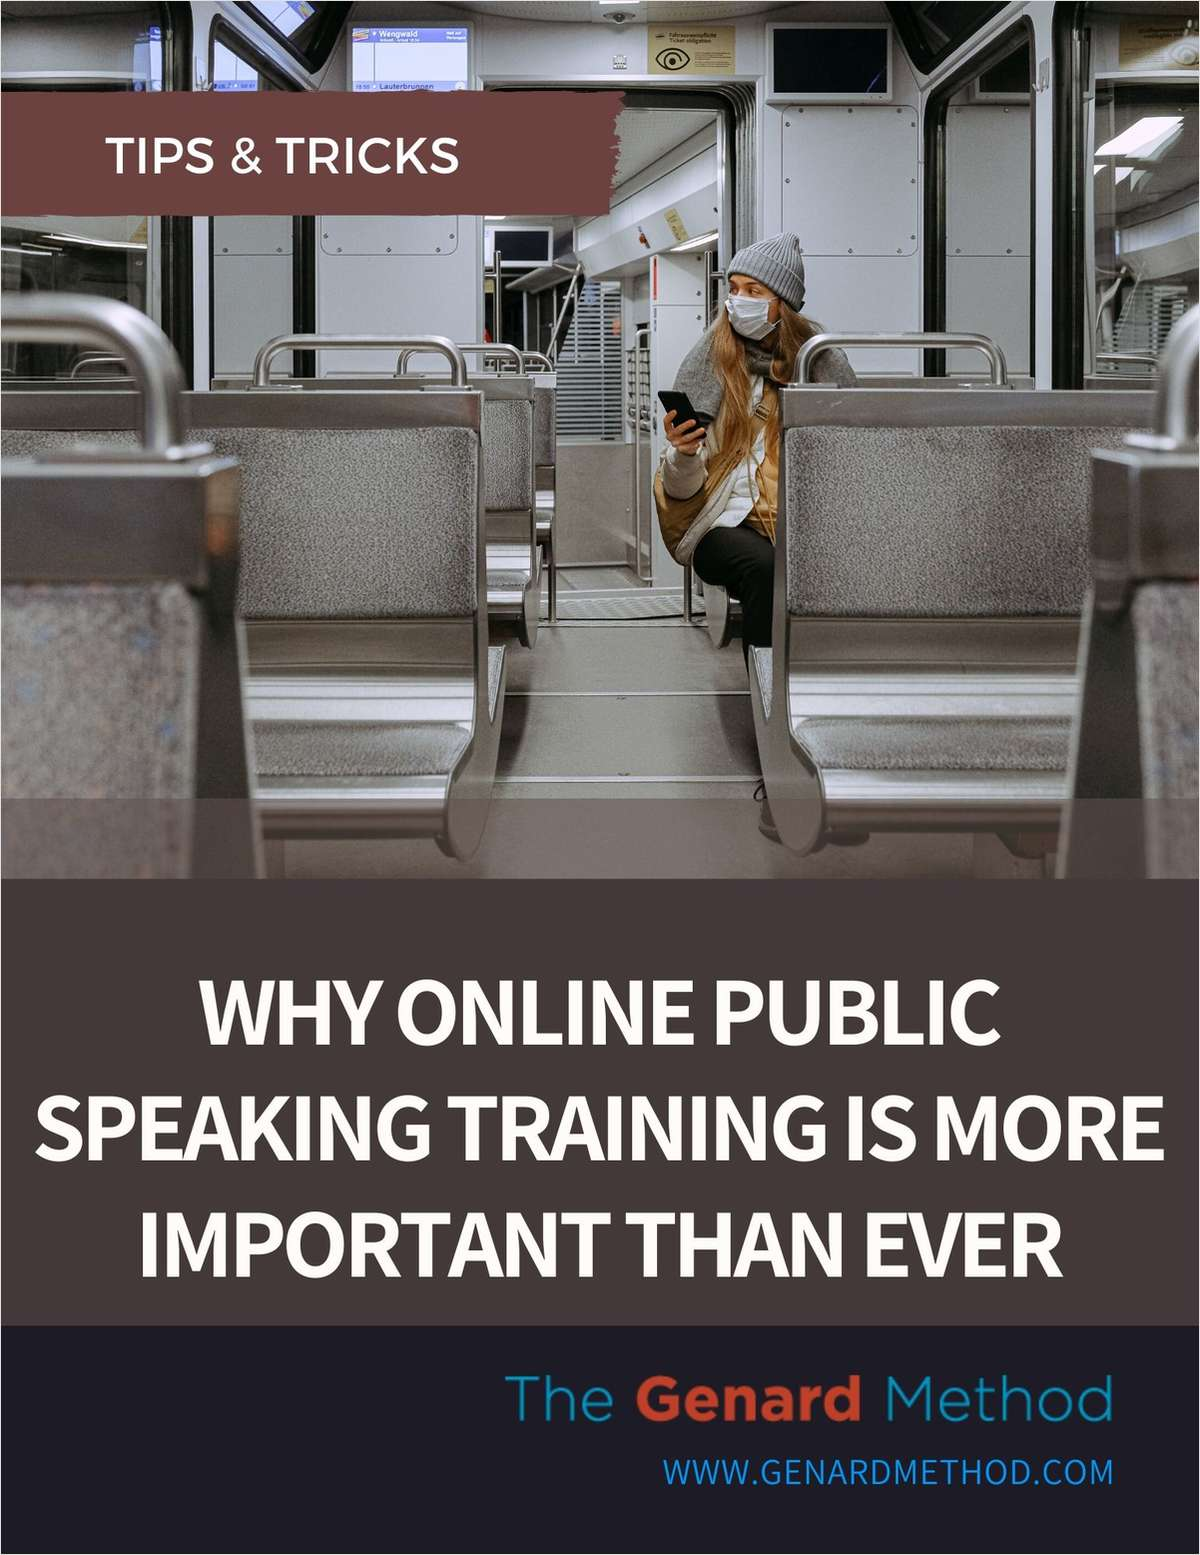 Why Online Public Speaking Training Is More Important Than Ever